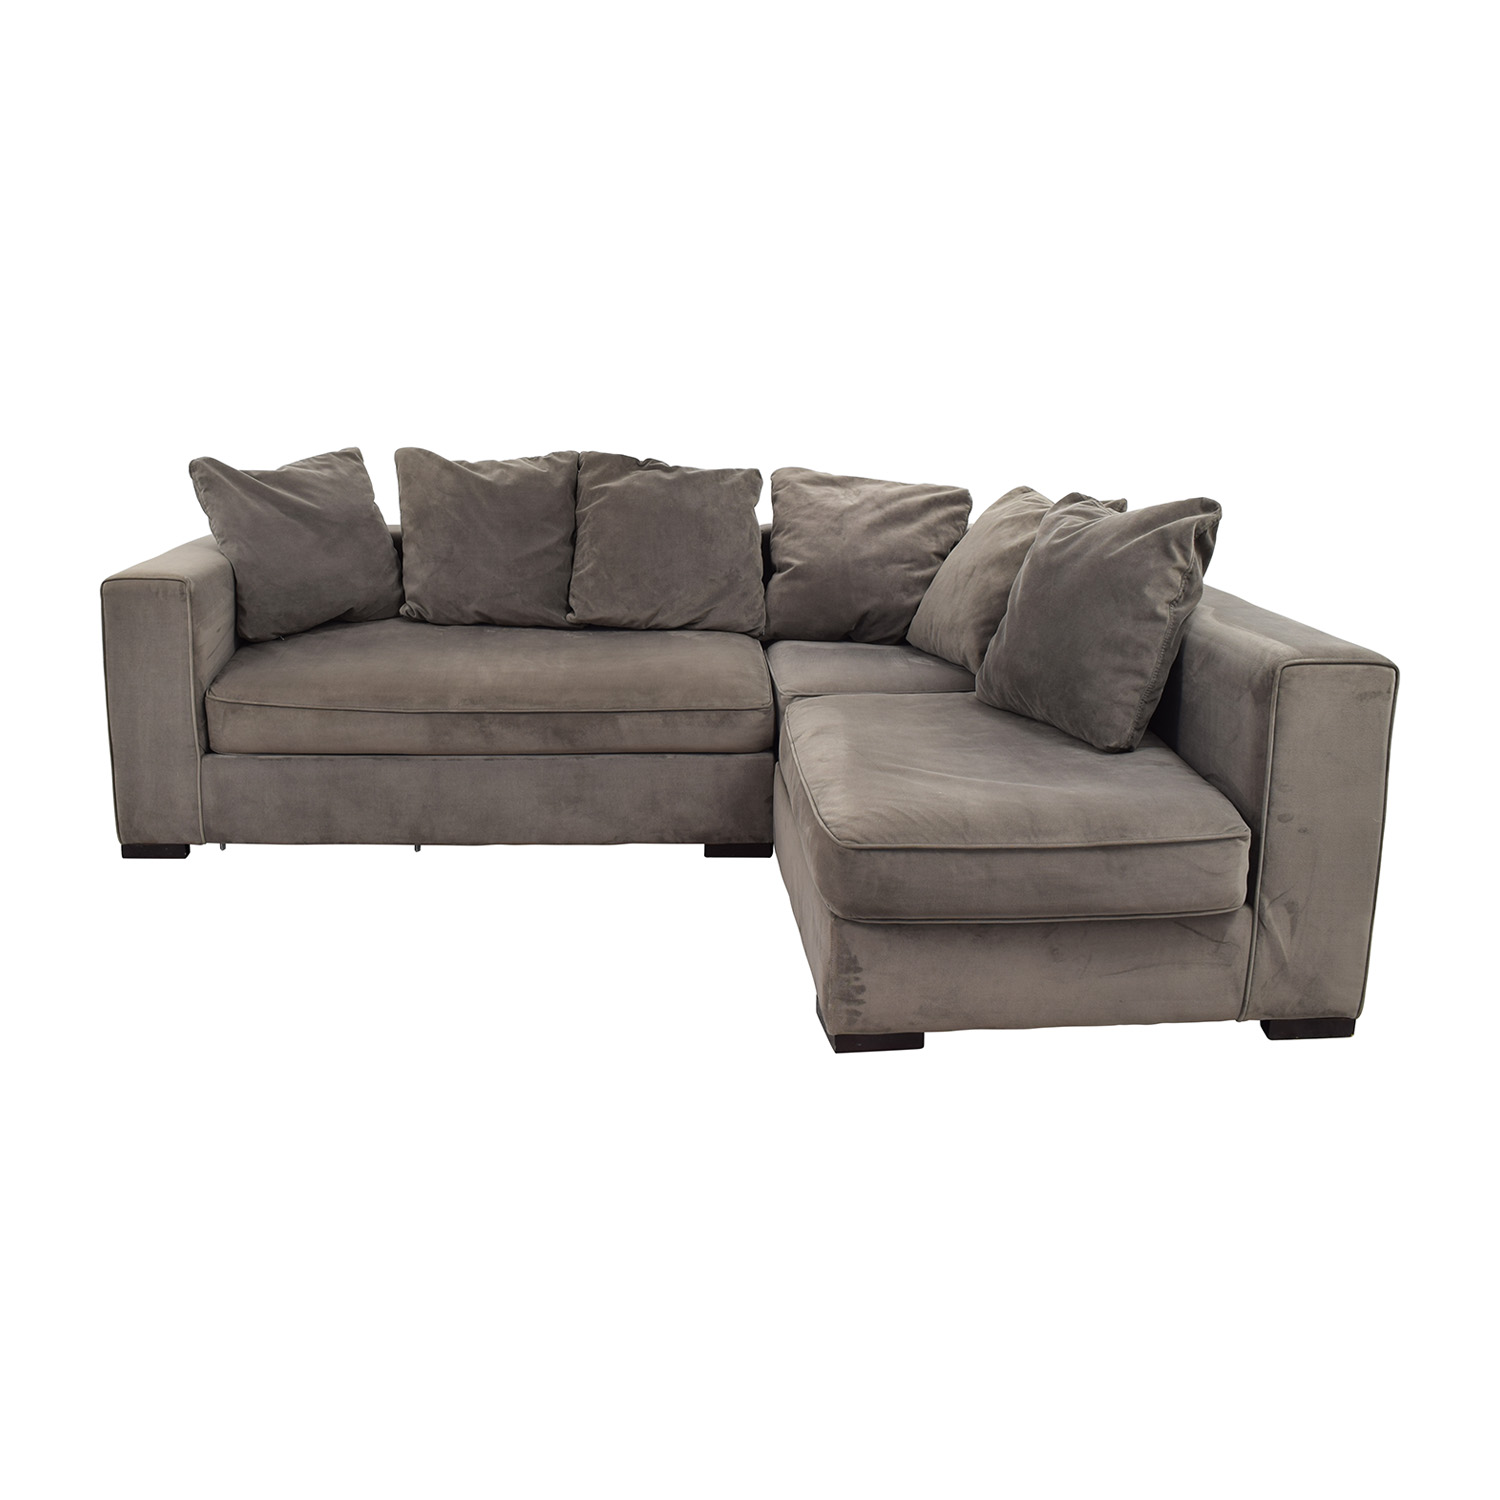 reversible the sectionals home p gray sectional with depot chaise nori grey couch